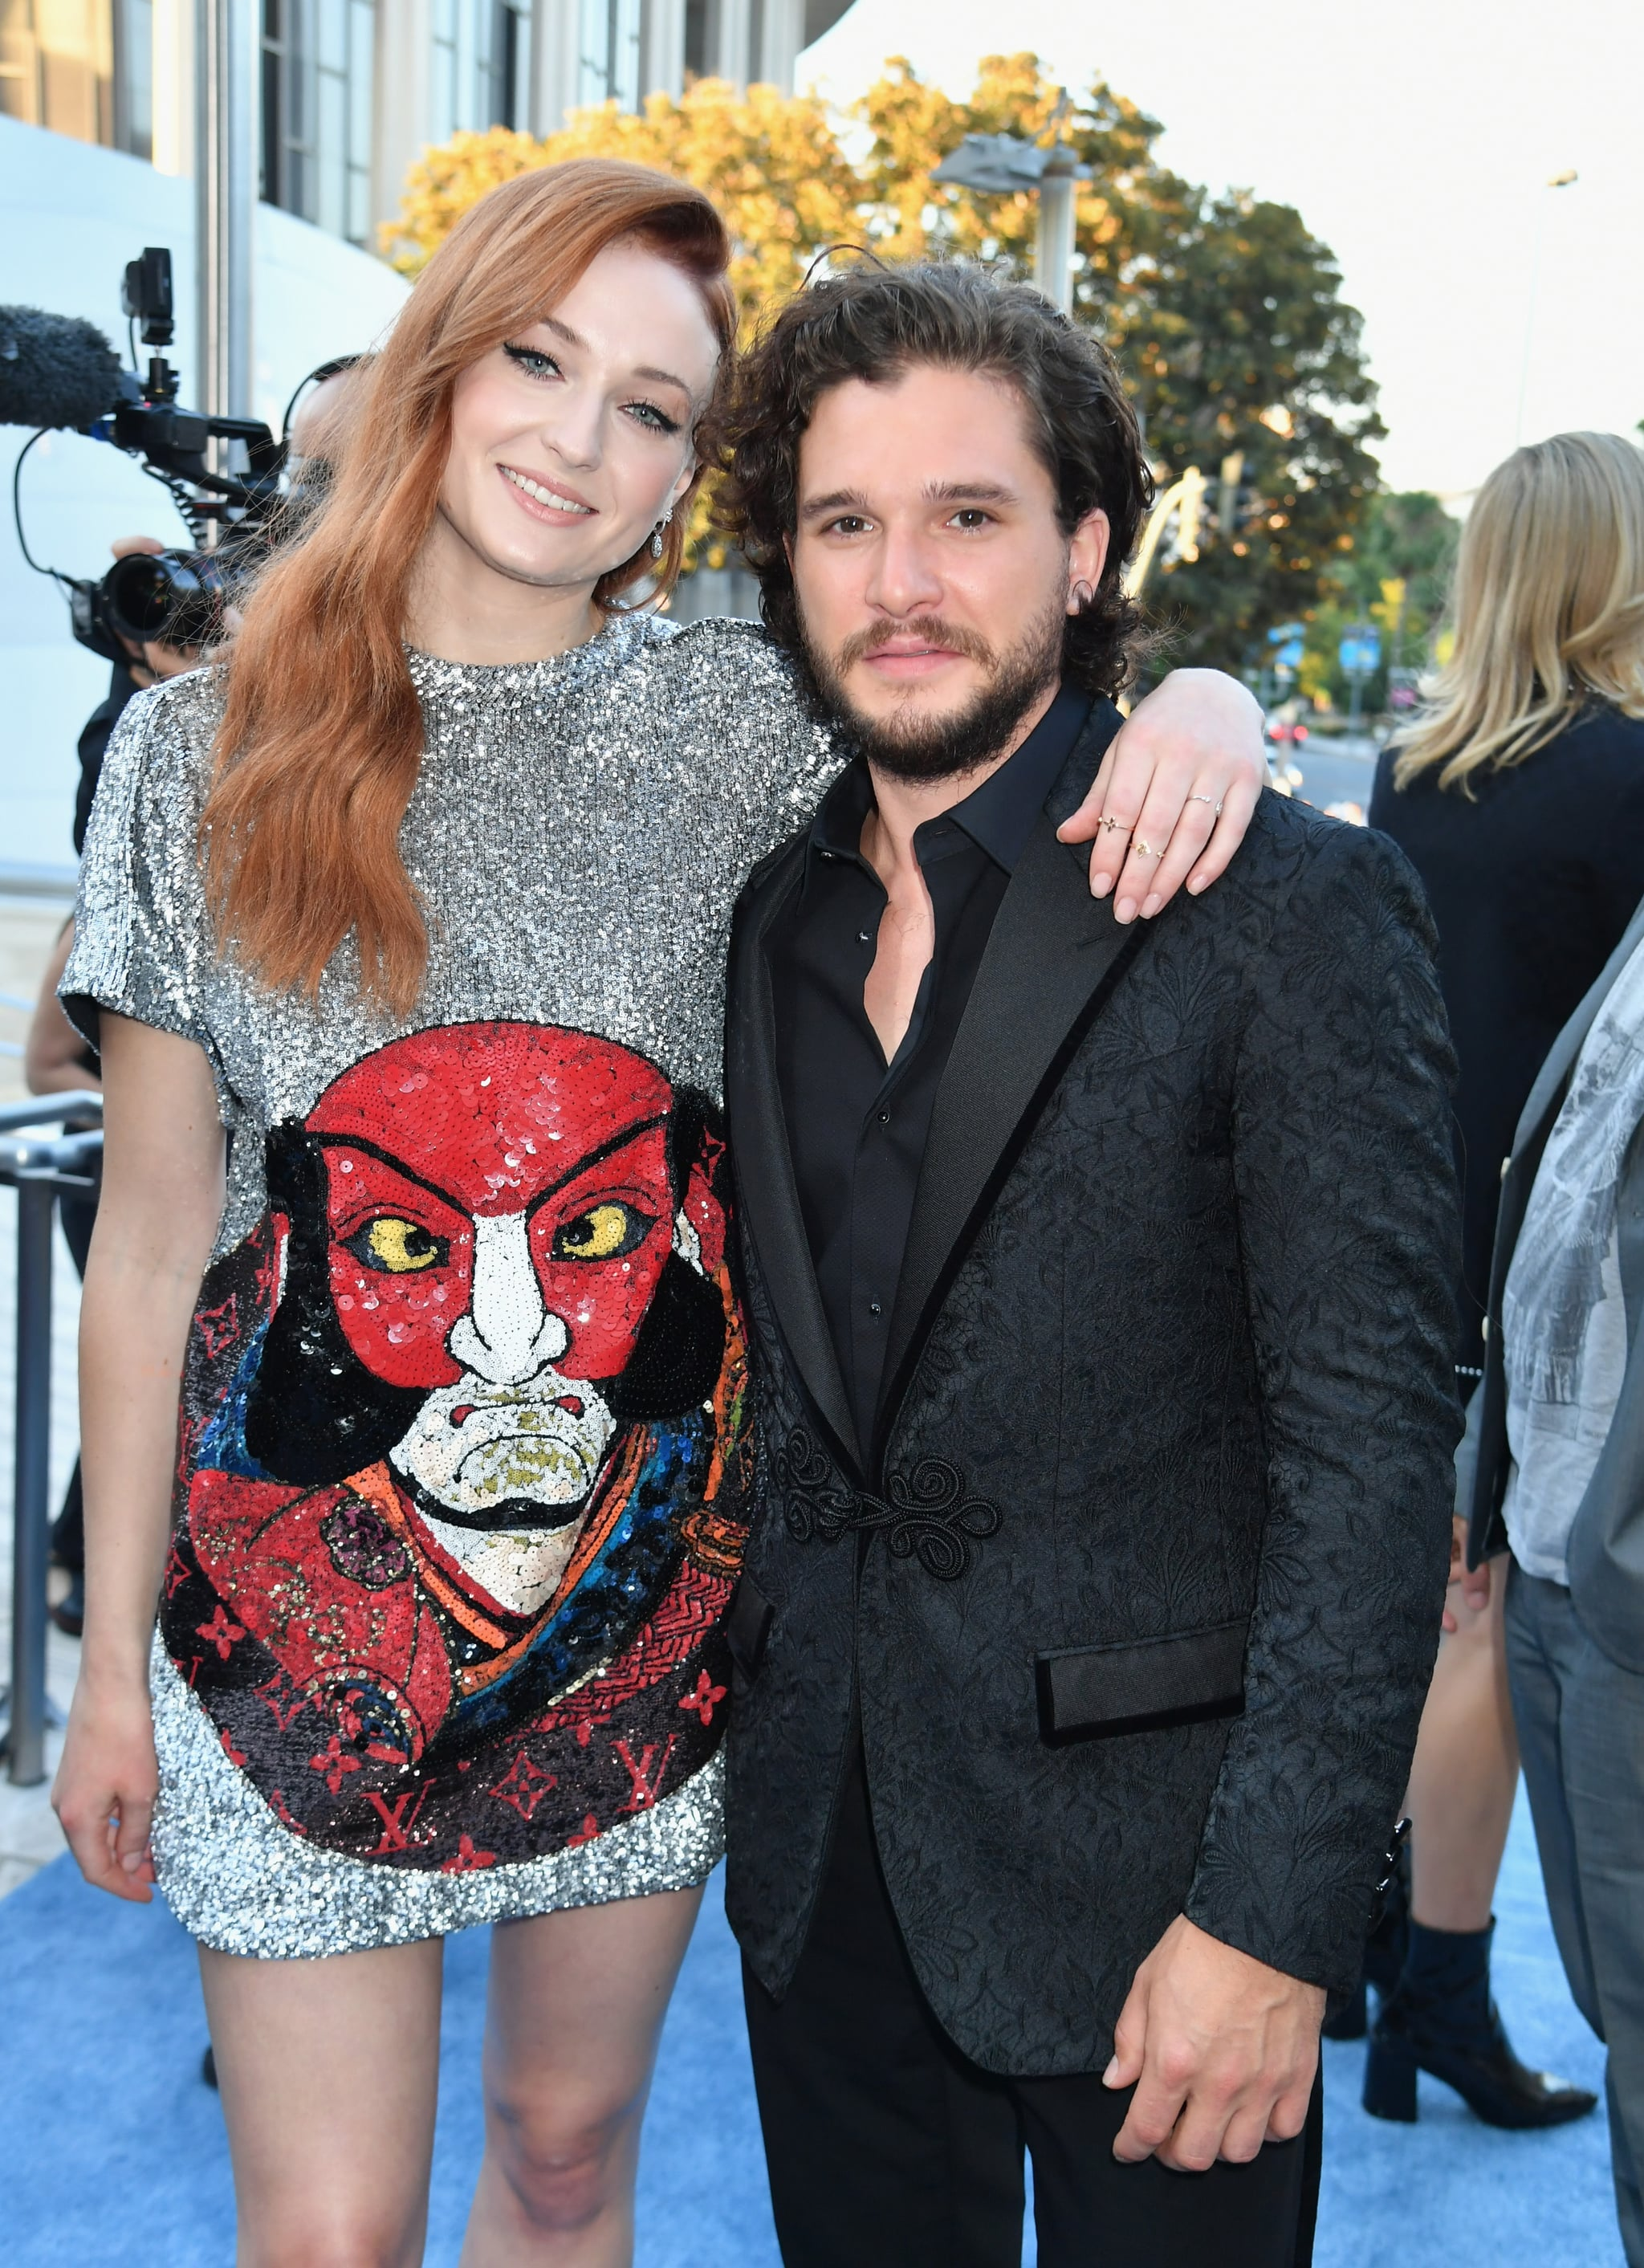 LOS ANGELES, CA - JULY 12: Actors Sophie Turner (L) and Kit Harrington at the Los Angeles Premiere for the seventh season of HBO's